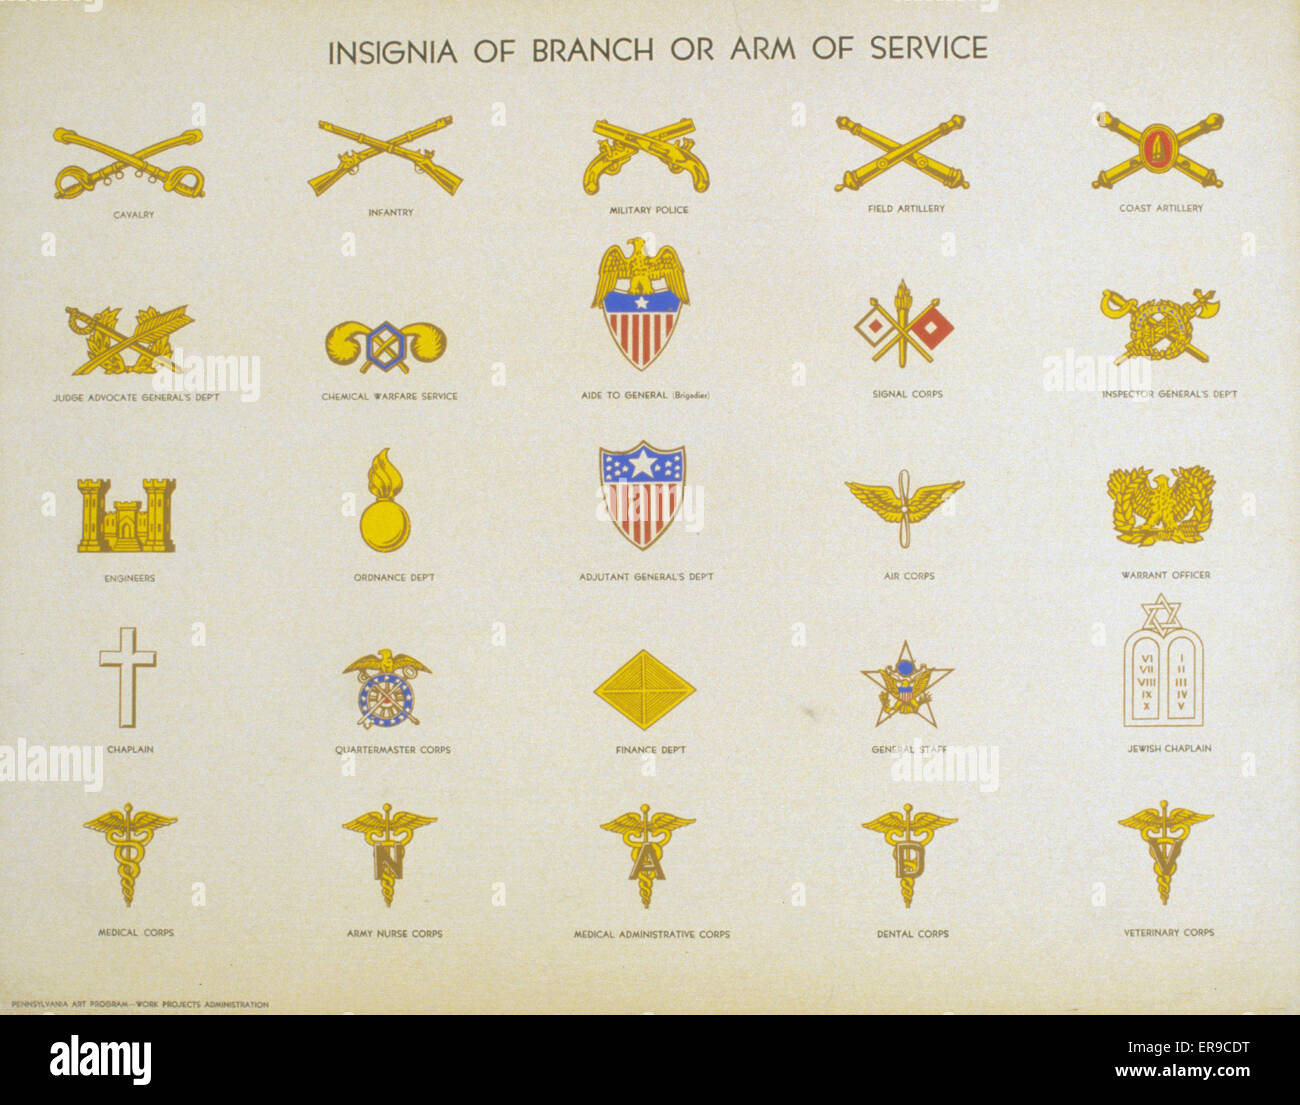 Insignia of branch or arm of service. Poster showing the insignia for several branches of military service. Date - Stock Image